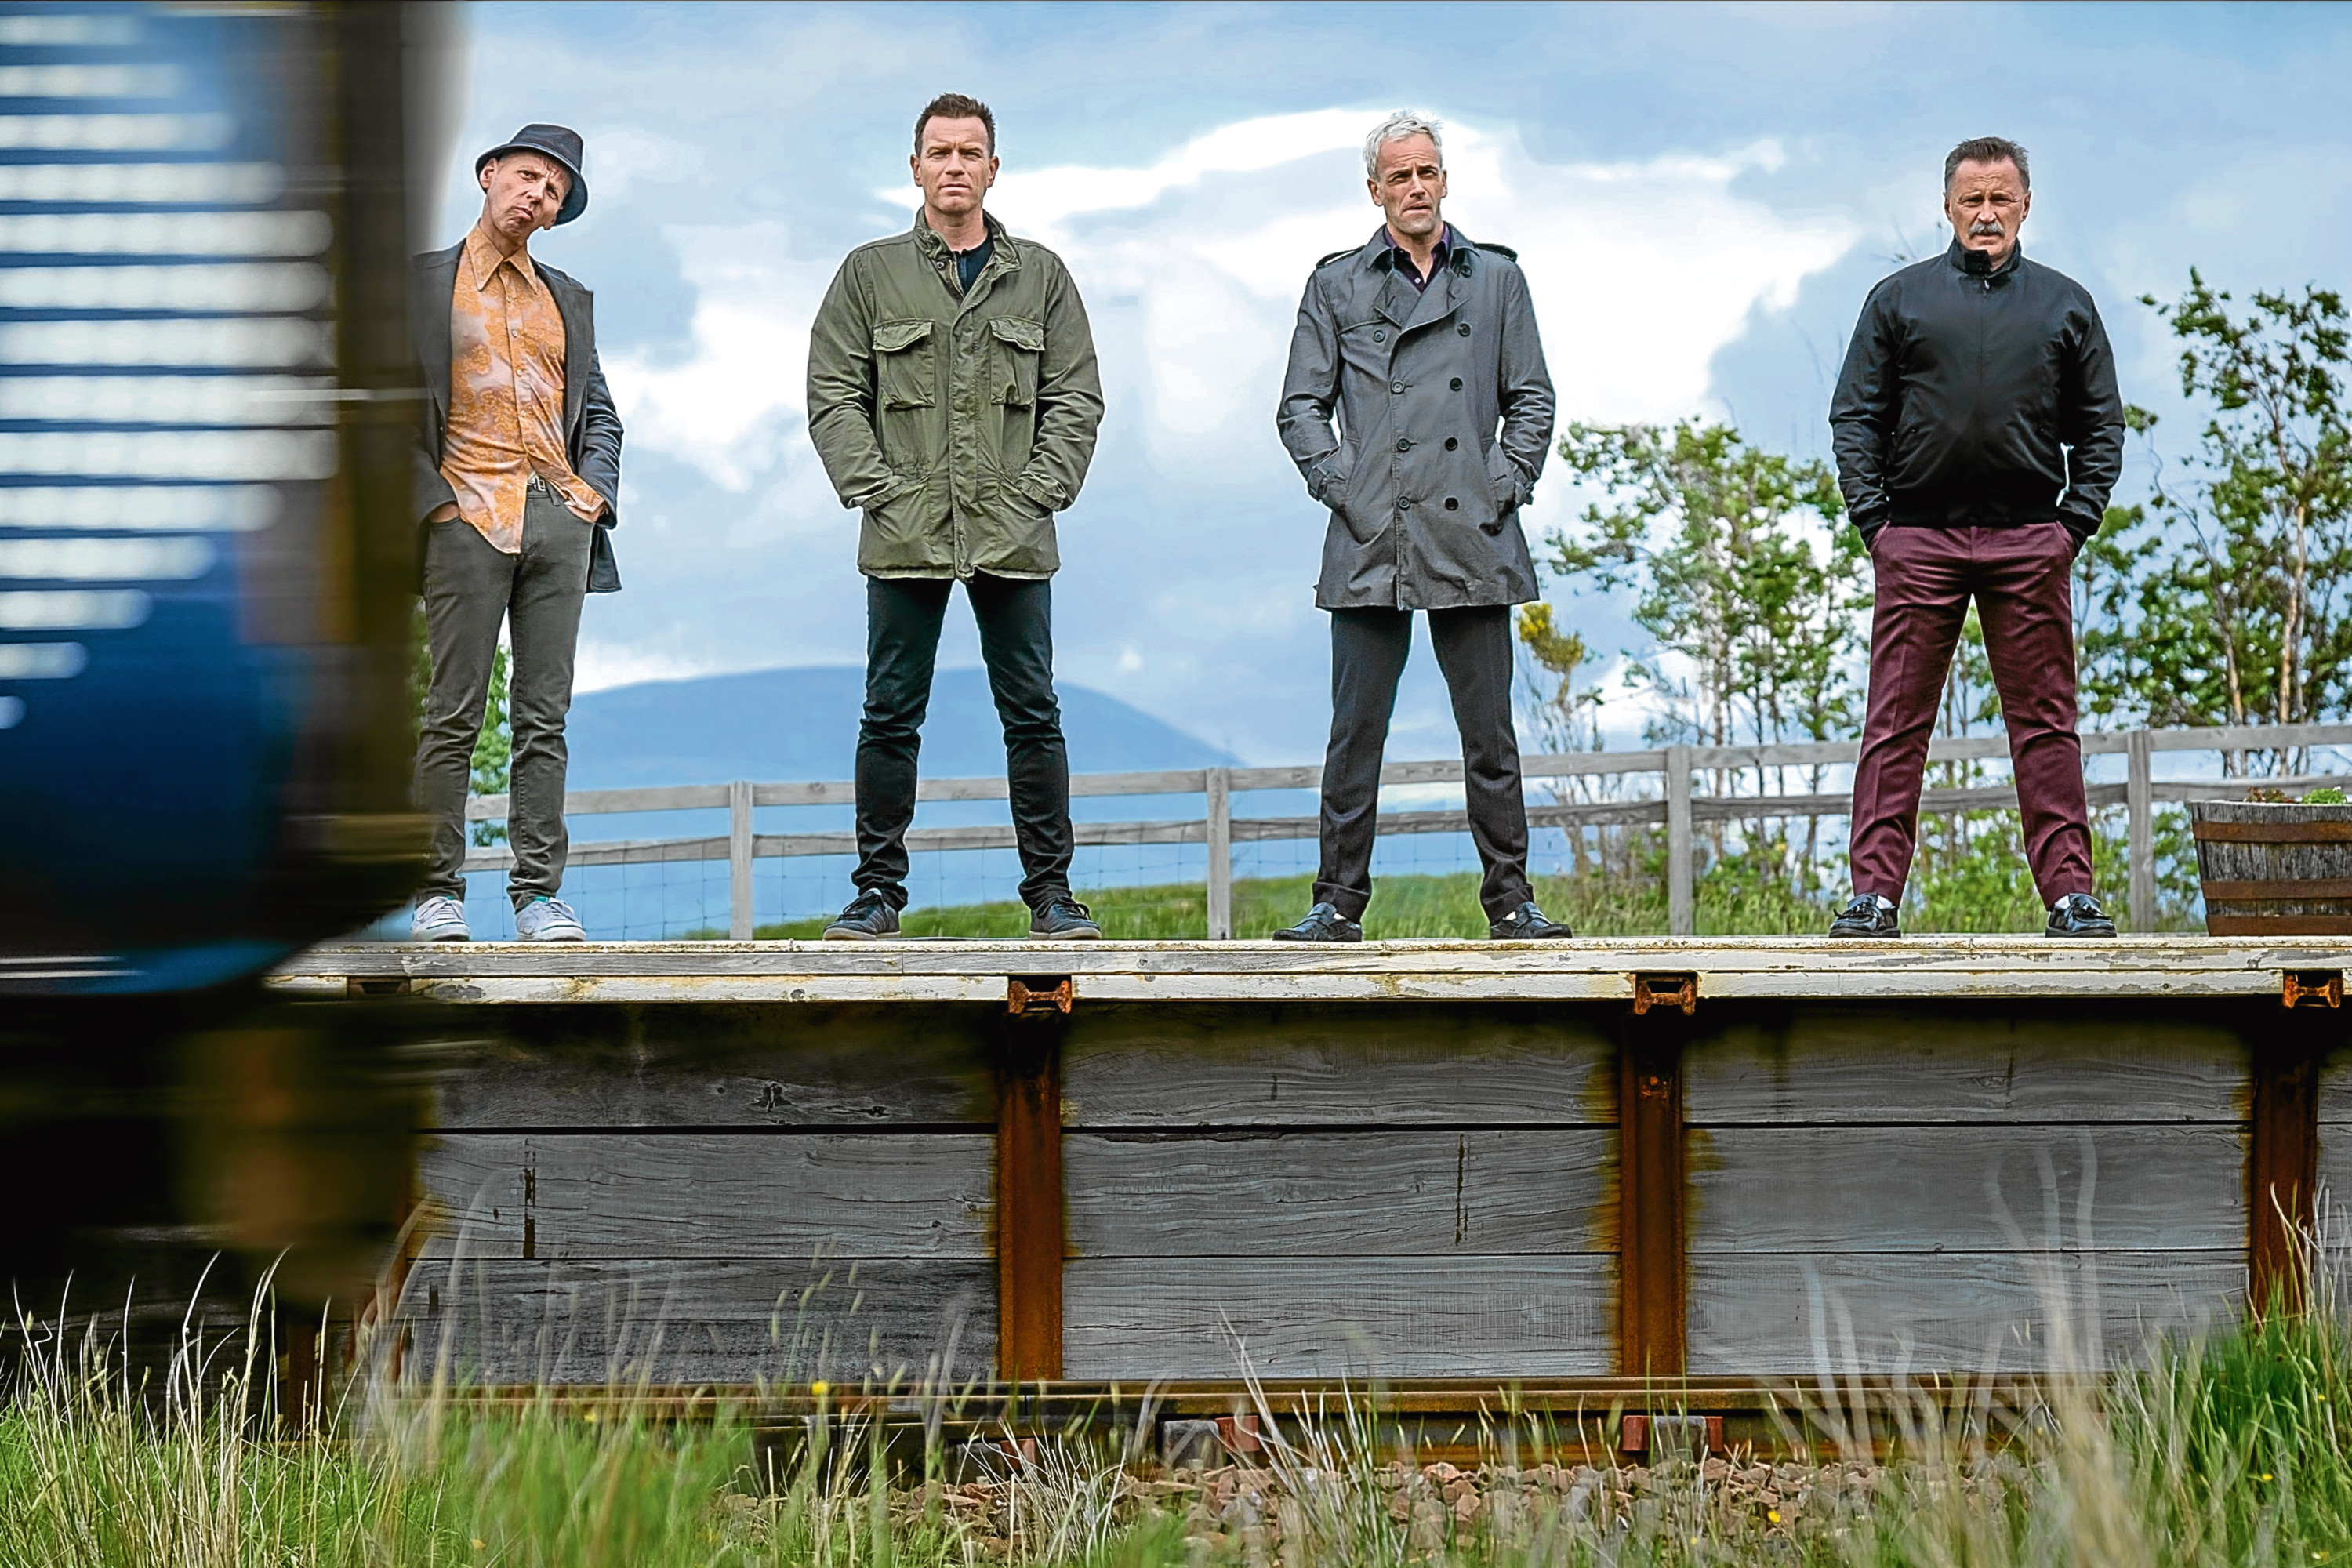 T2 Trainspotting (Allstar/TRISTAR PICTURES)